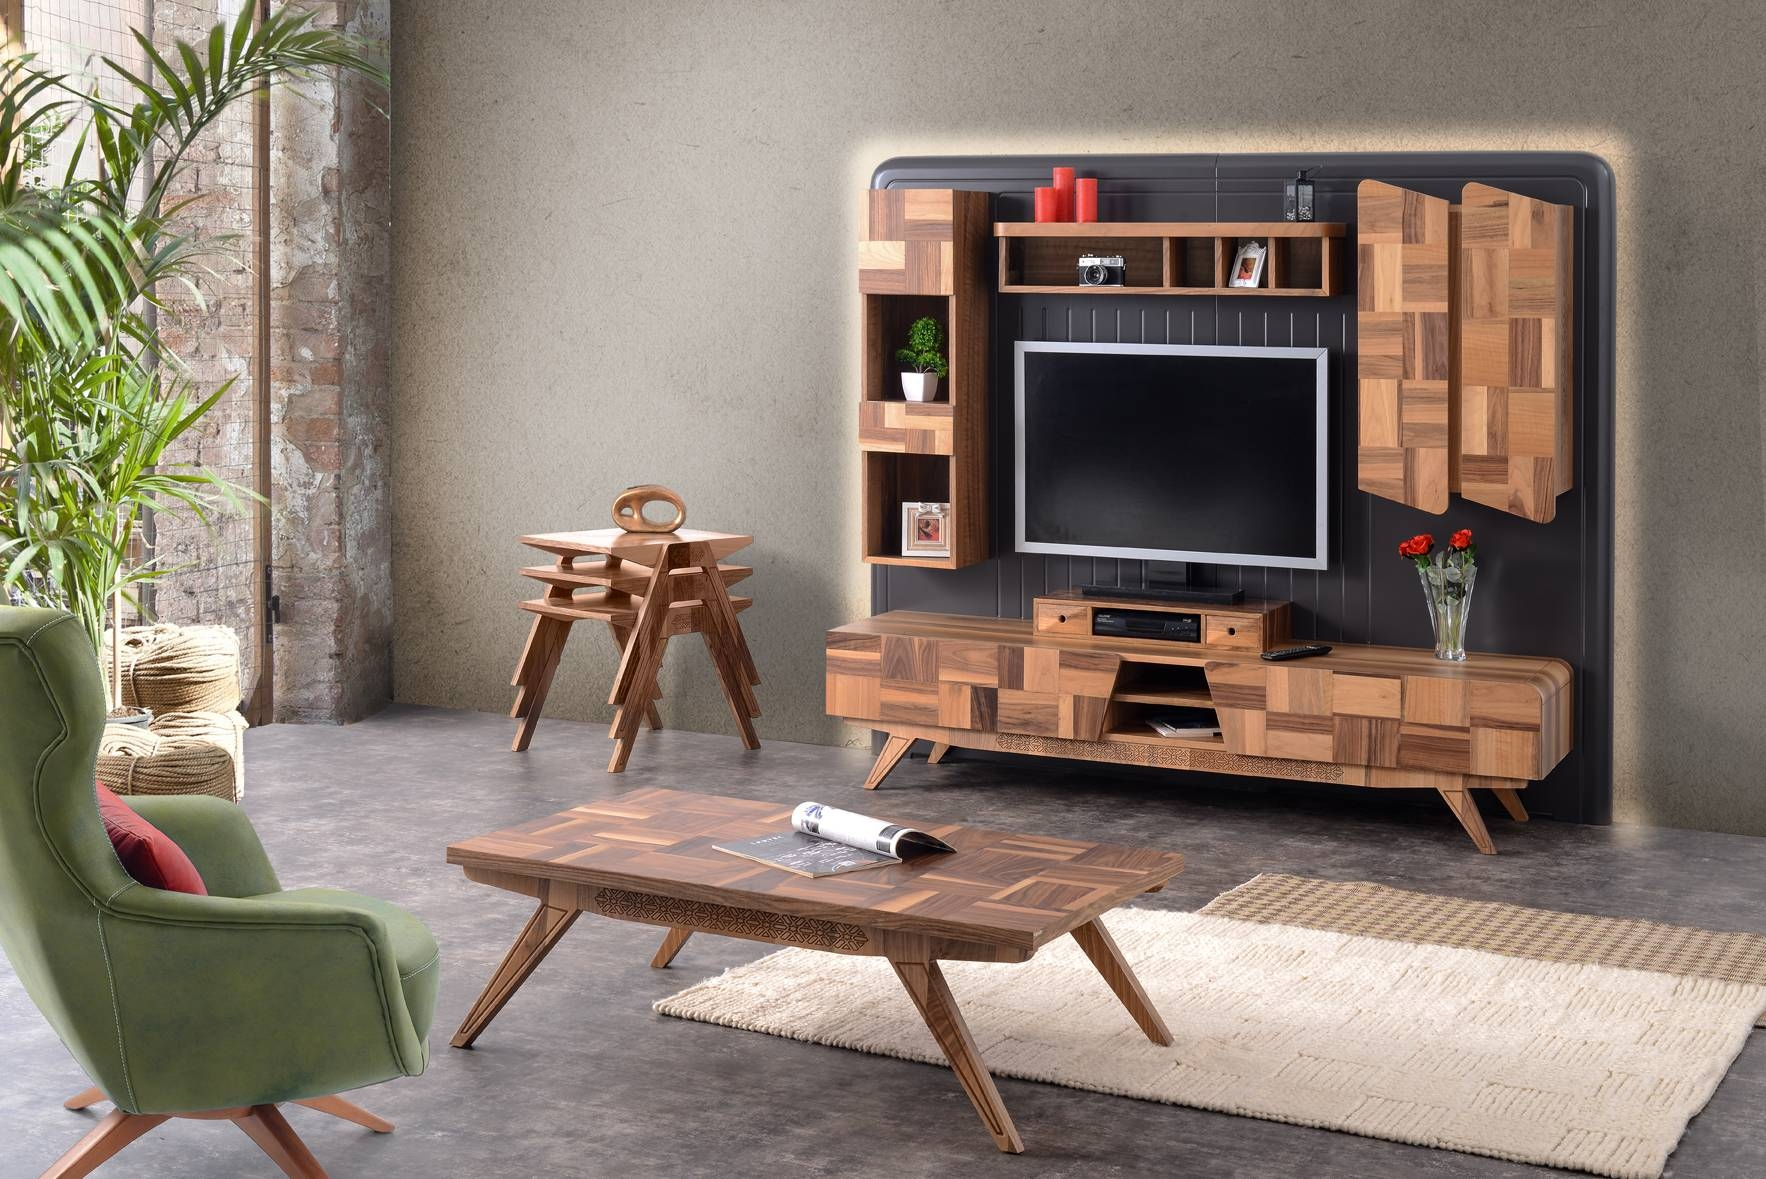 Contemporary Entertainment Sets & Tv Standshome Designer Goods in Coffee Table and Tv Unit Sets (Image 14 of 30)